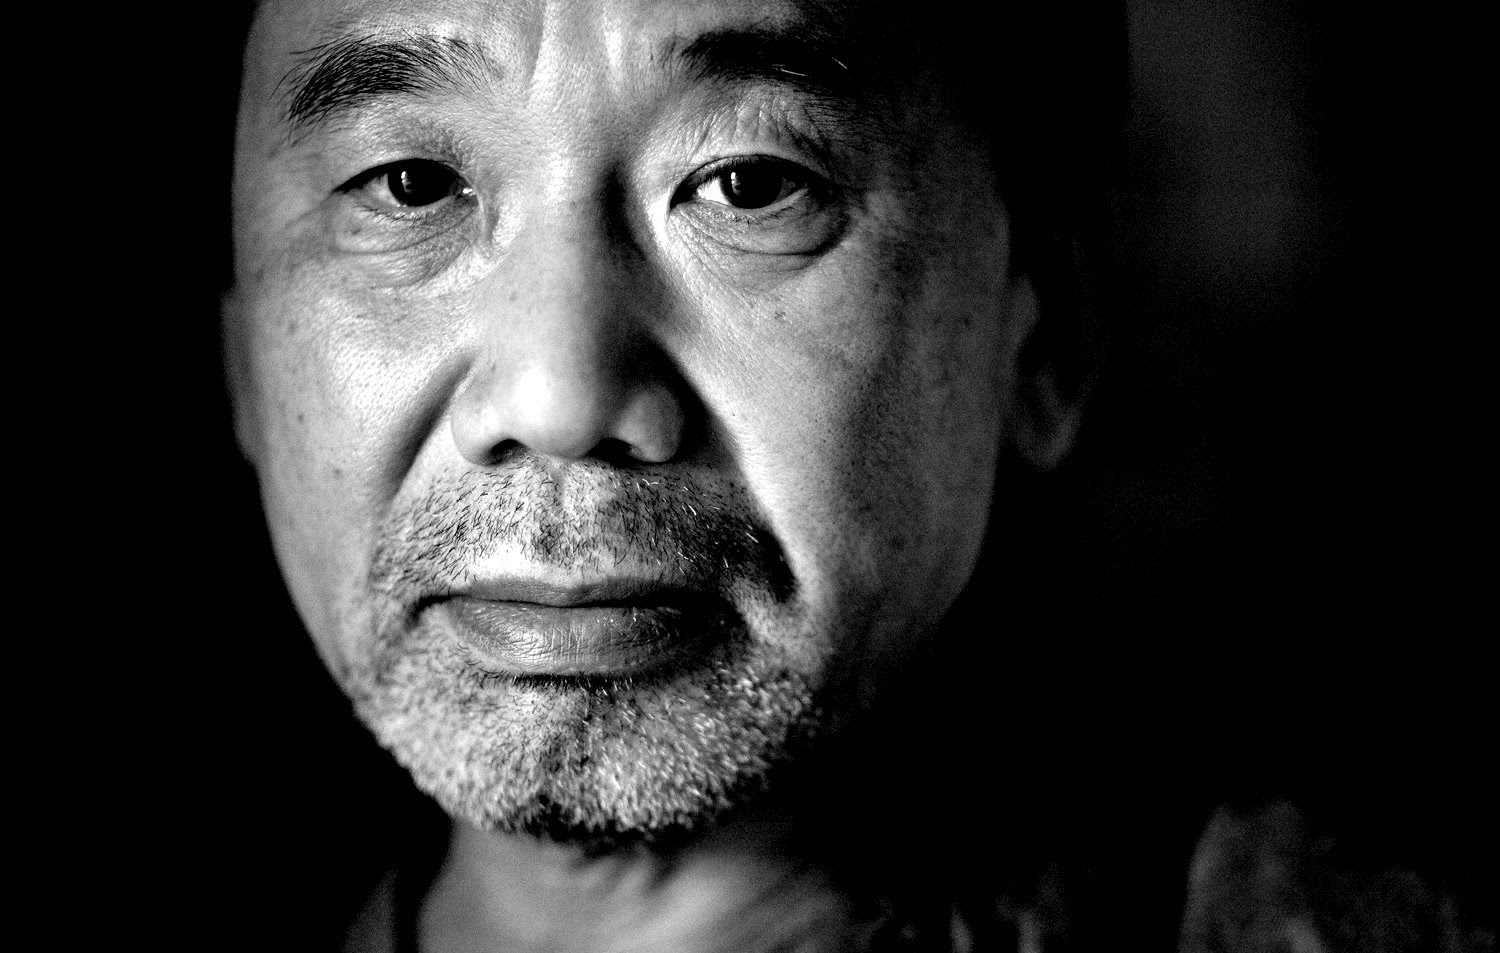 Haruki_Murakami_twolinespress_com_the-2016-nobel-prize-in-literature-roundtable